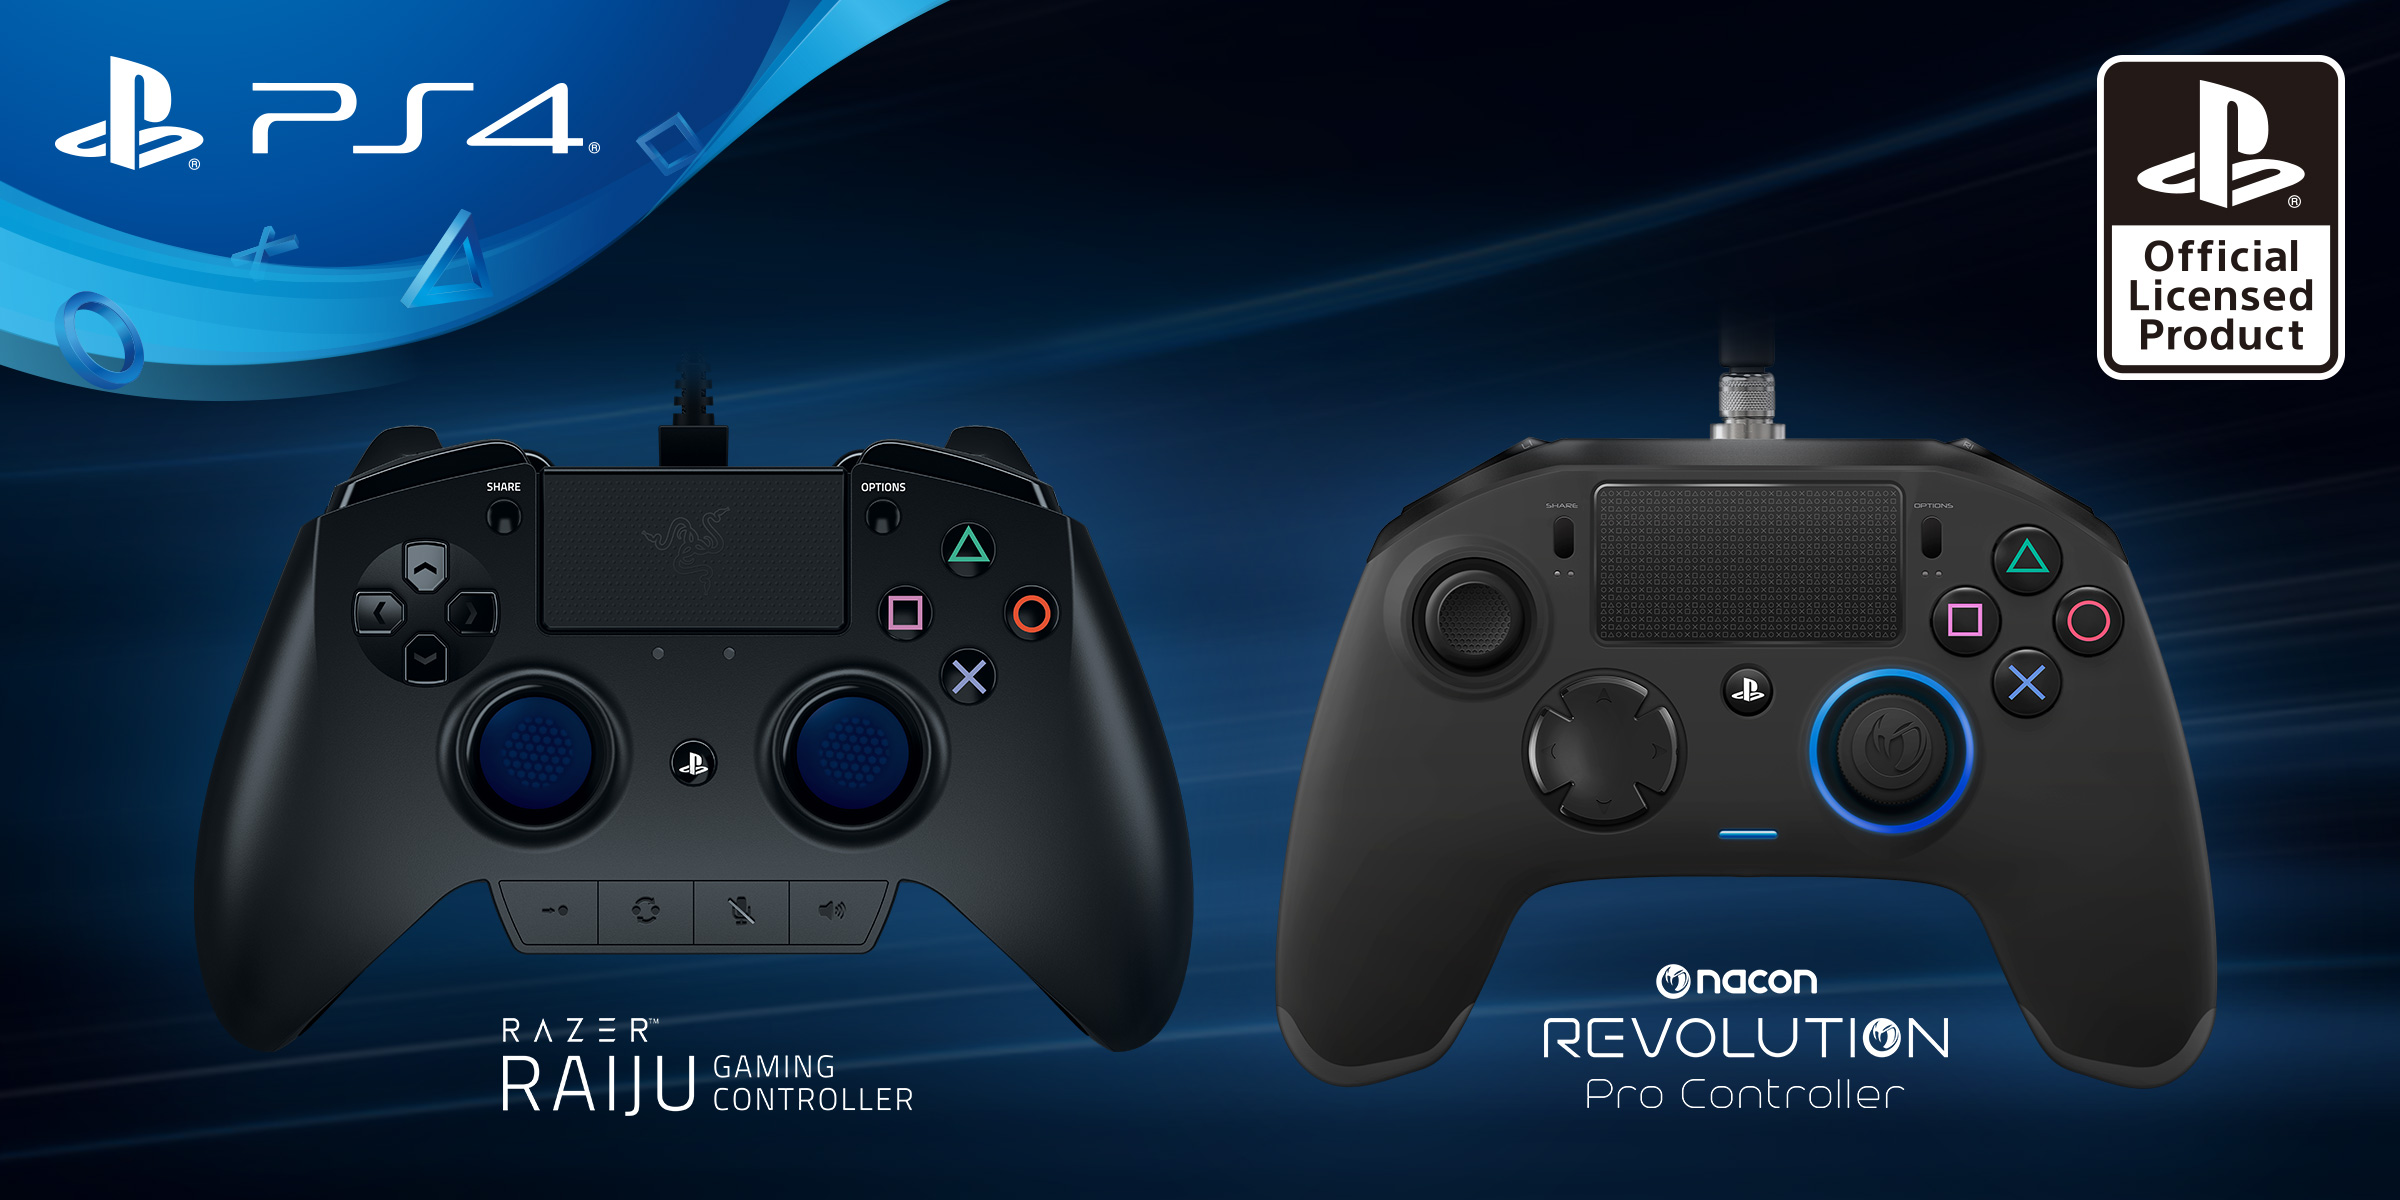 sony, microsoft, razer, gamepad, controller, playstation 4, xbox one, xbox elite, nacon, razer raiju, nacon revolution